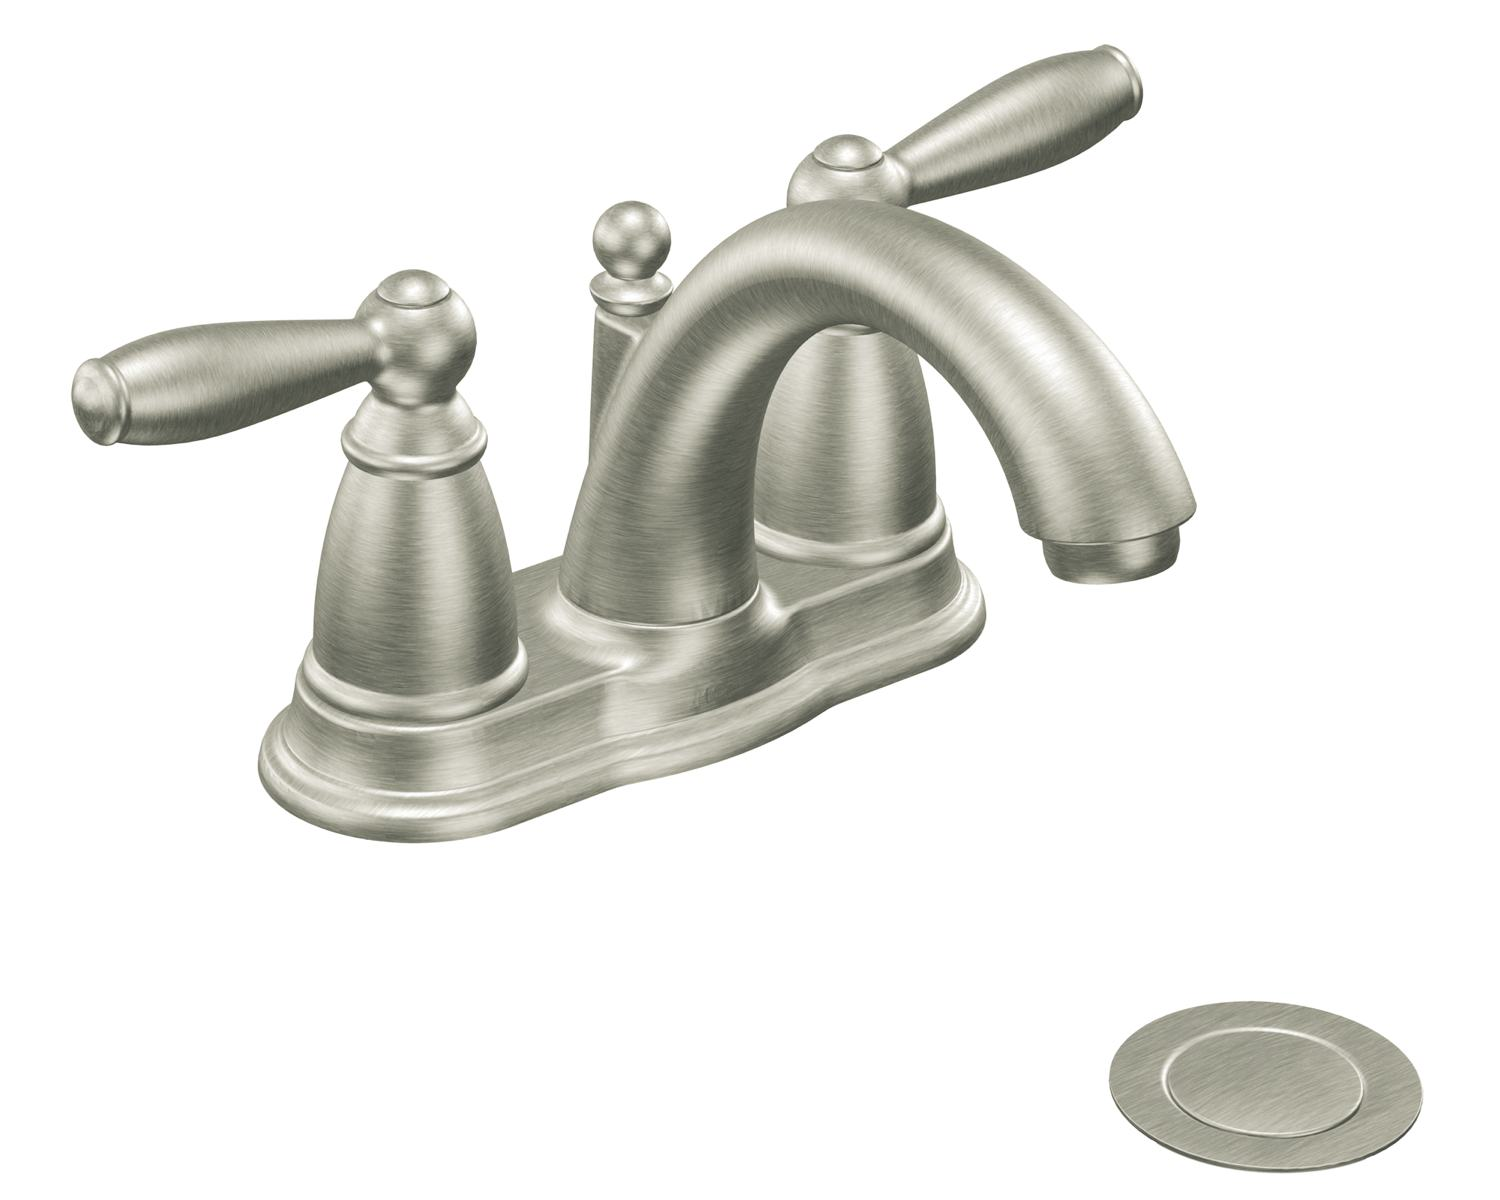 Kholer Kitchen Faucets Moen 6610bn Brantford Two Handle Low Arc Centerset